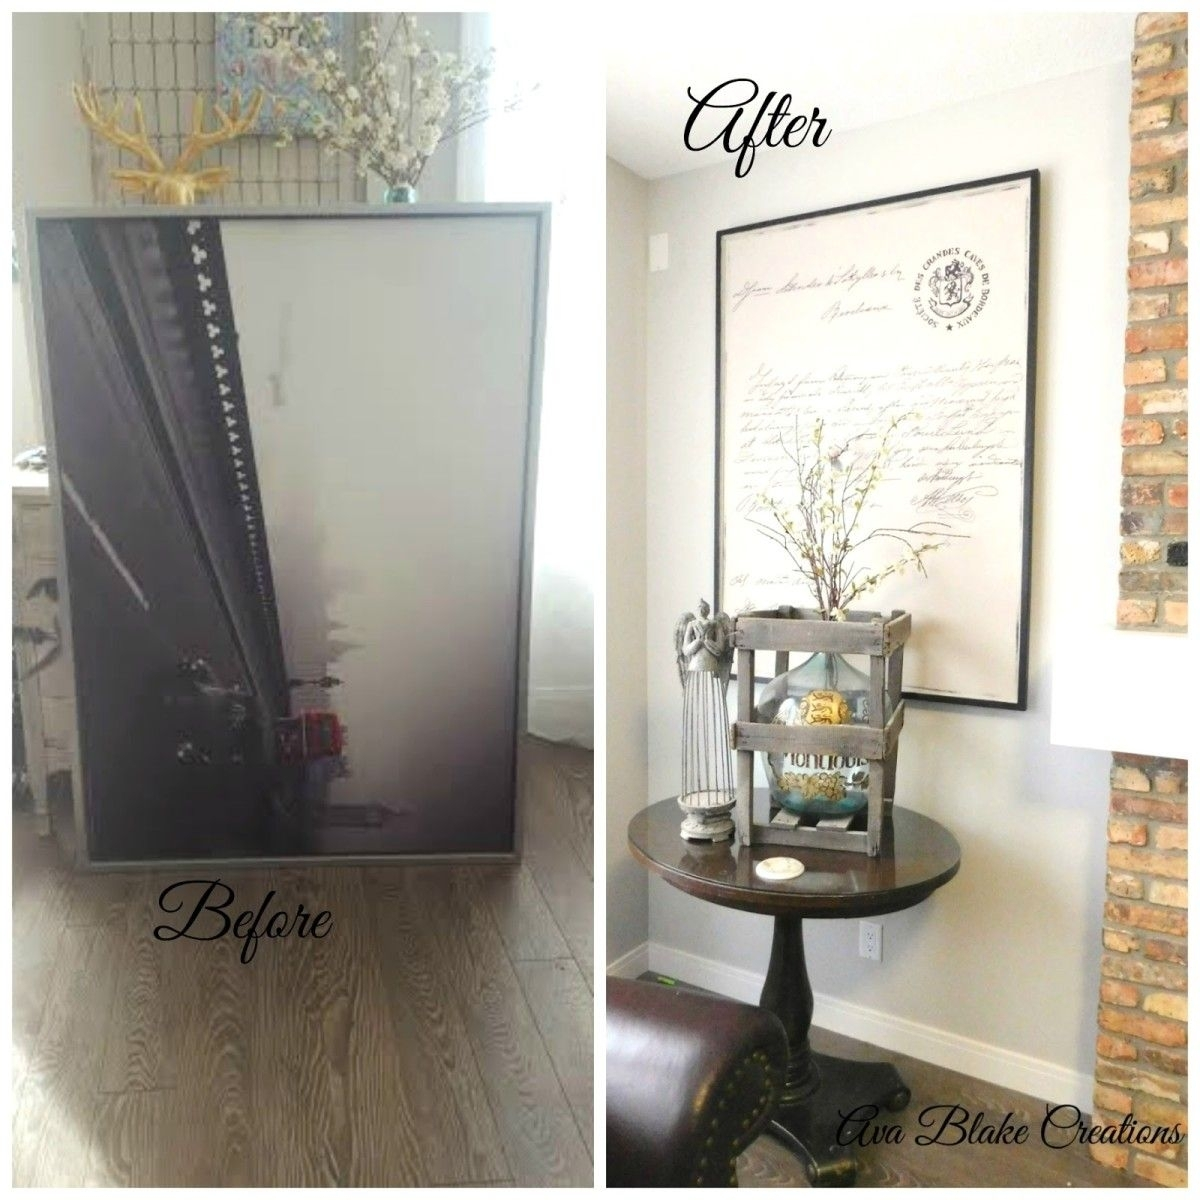 Ikea Wall Art To French Letter Hack | Ikea | Pinterest | Walls Pertaining To Latest Ikea Wall Art (View 13 of 15)